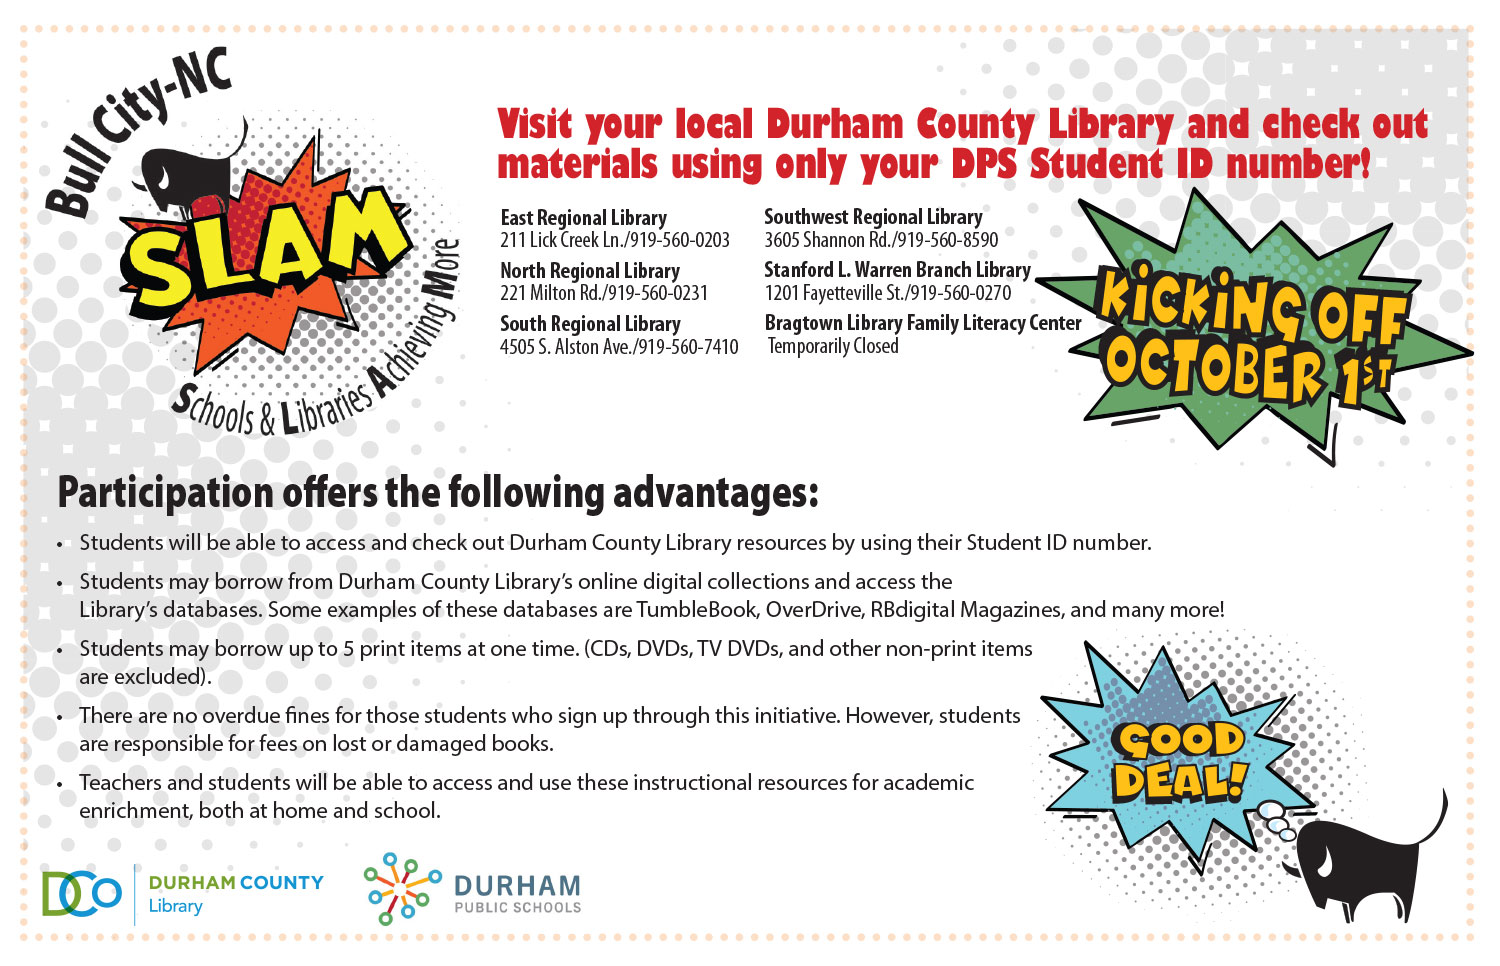 Bull City NC SLAM: Visit your local Durham County Library and check out materials using only your DPS Student ID number! Starts October 1, 2018